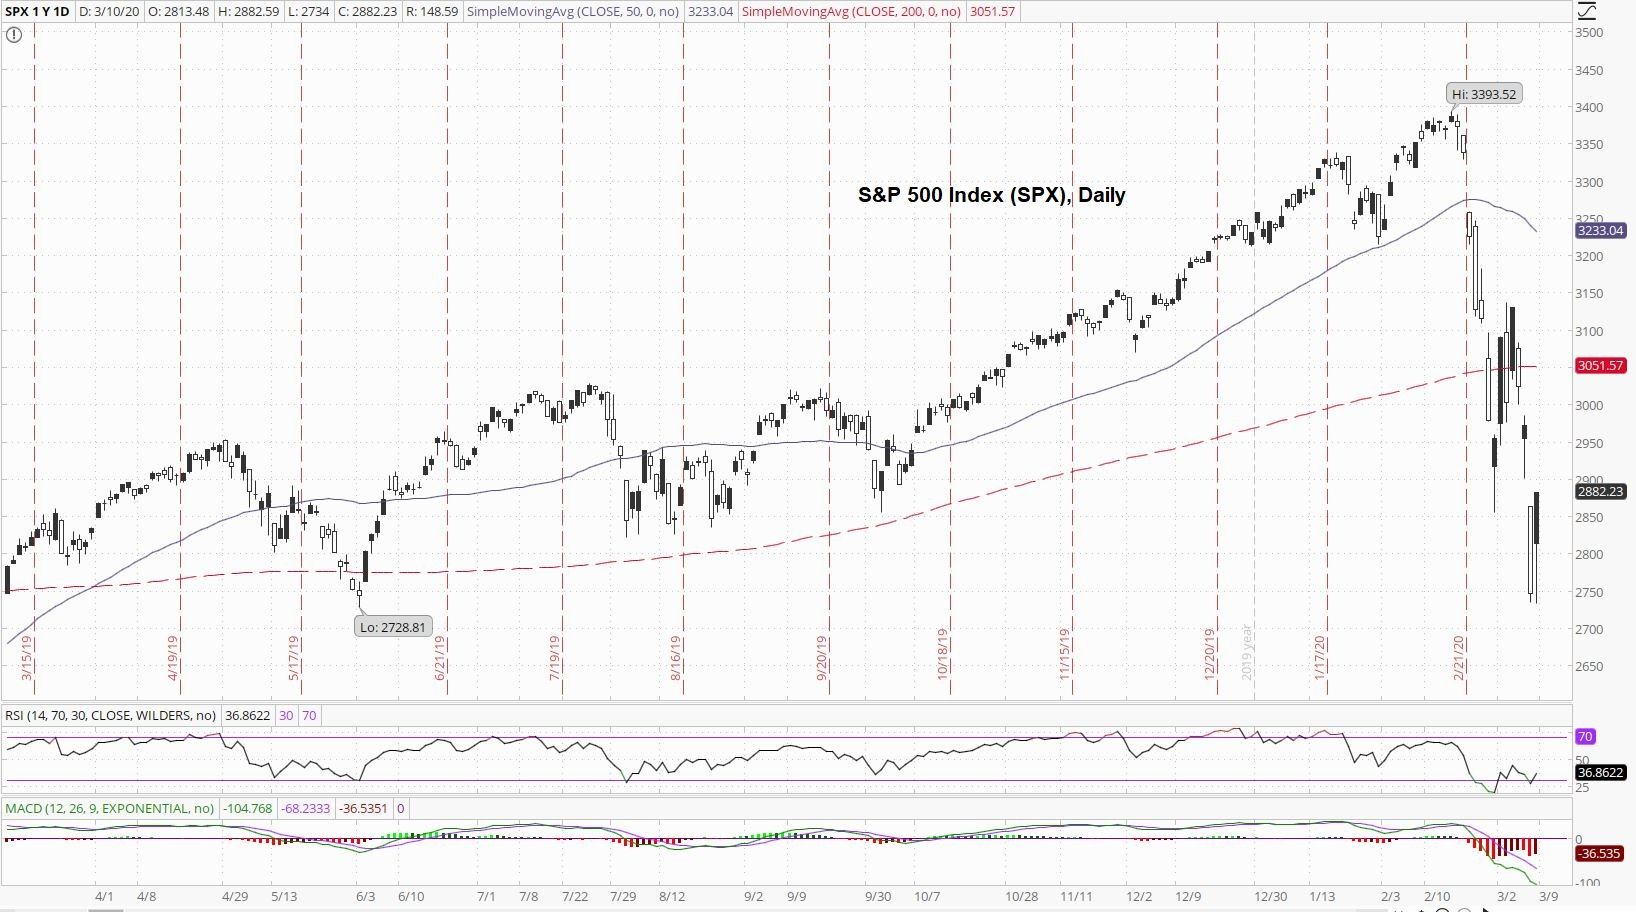 S&P 500 Daily Index